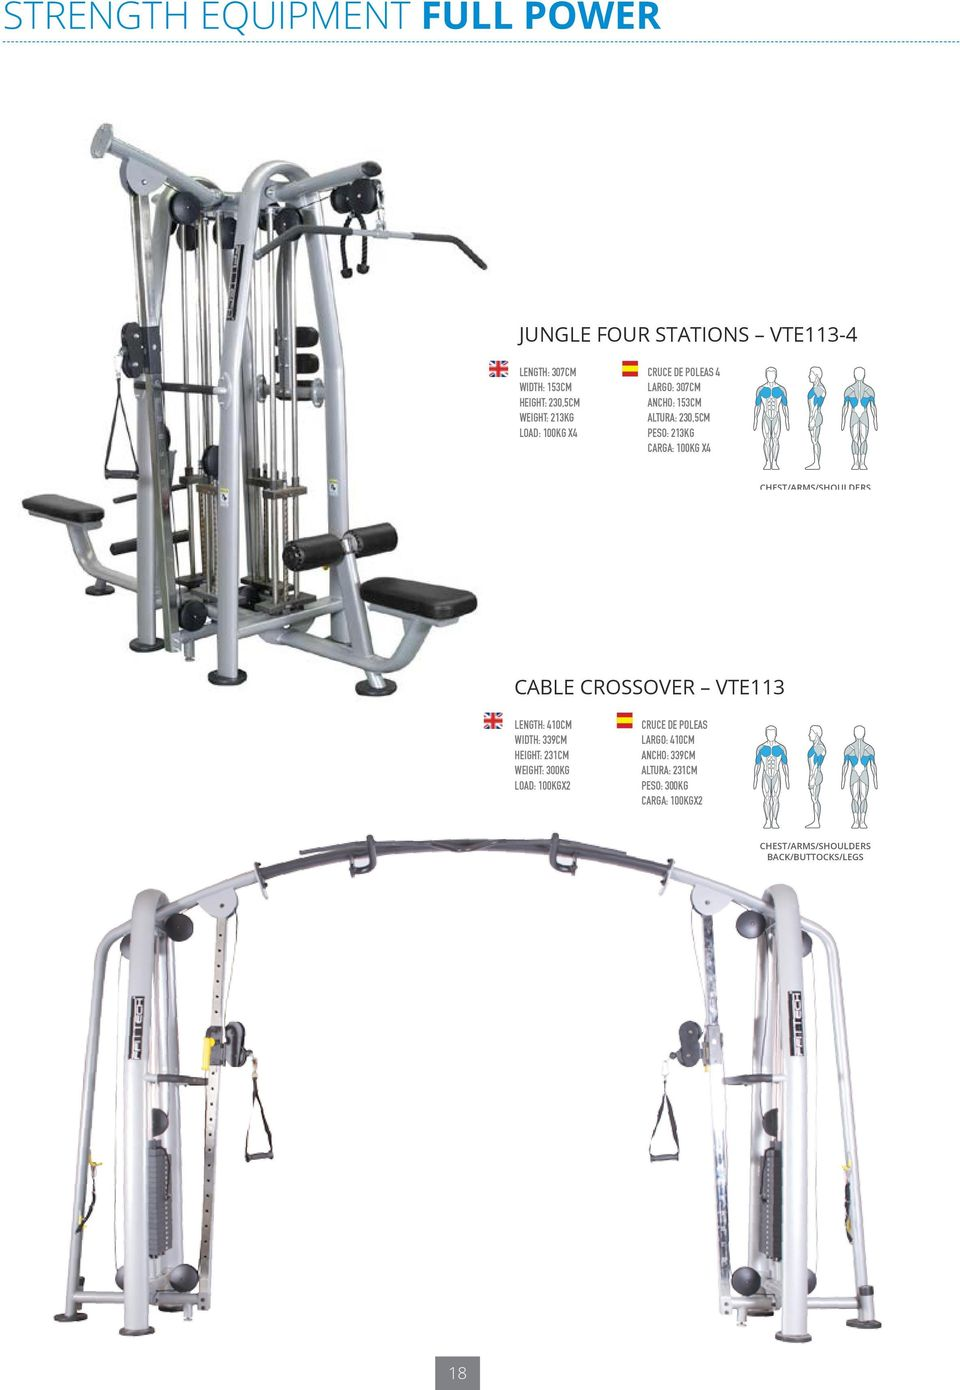 CHEST/ARMS/SHOULDERS BACK/BUTTOCKS/LEGS cable crossover VTE113 LEGS/GLUTEALS INNER THIGHS/OUTER THIGHS /SHOULDERS/CHEST SIDE/ABDOMINALS/BACK Length: 410cm Width: 339cm